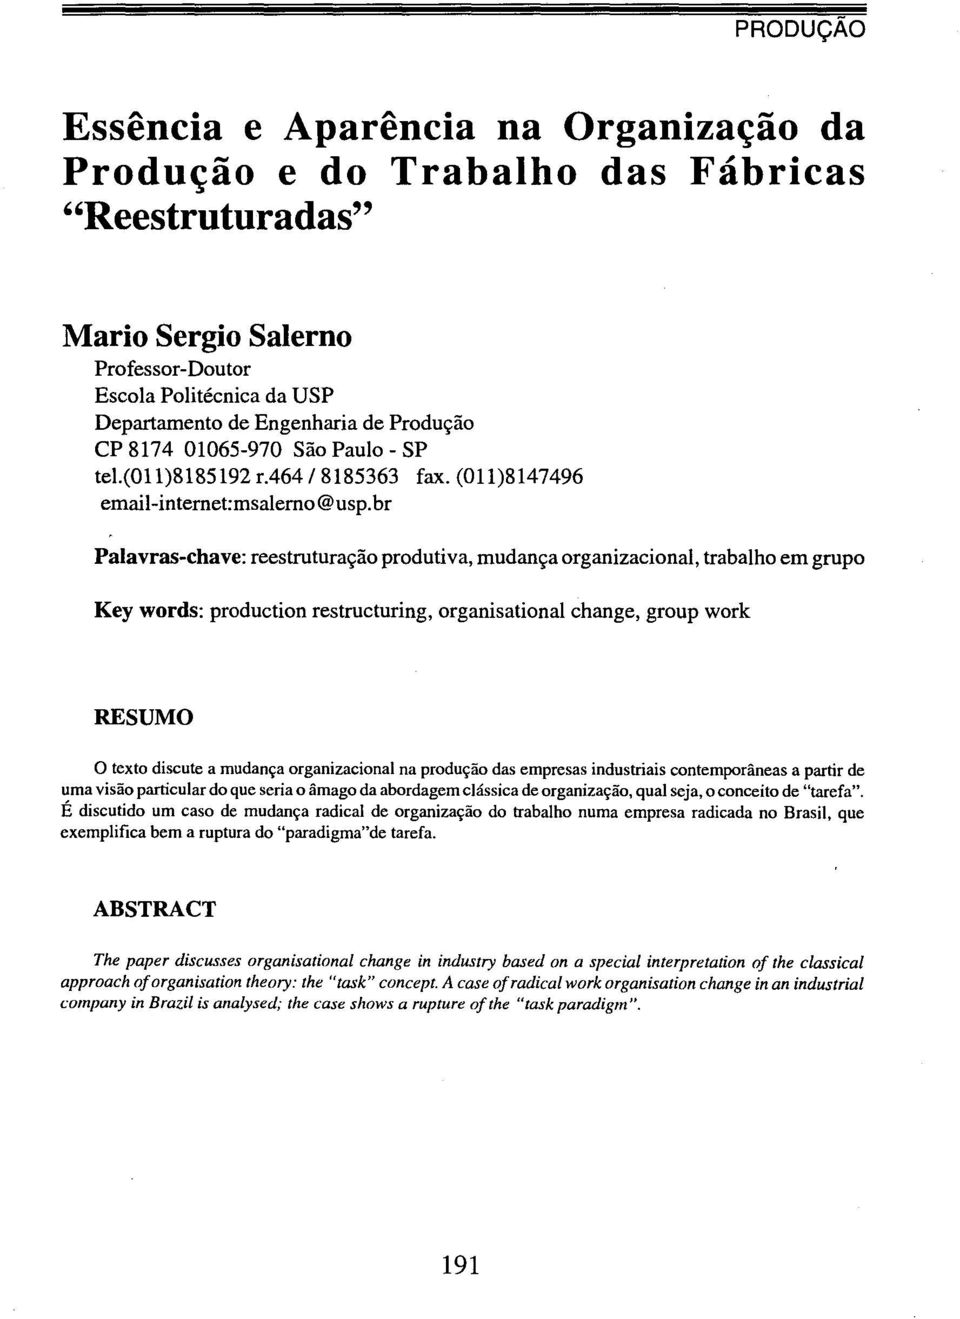 br Palavras-chave: reestruturação produtiva, mudança organizacional, trabalho em grupo Key words: production restructuring, organisational change, group work RESUMO o texto discute a mudança